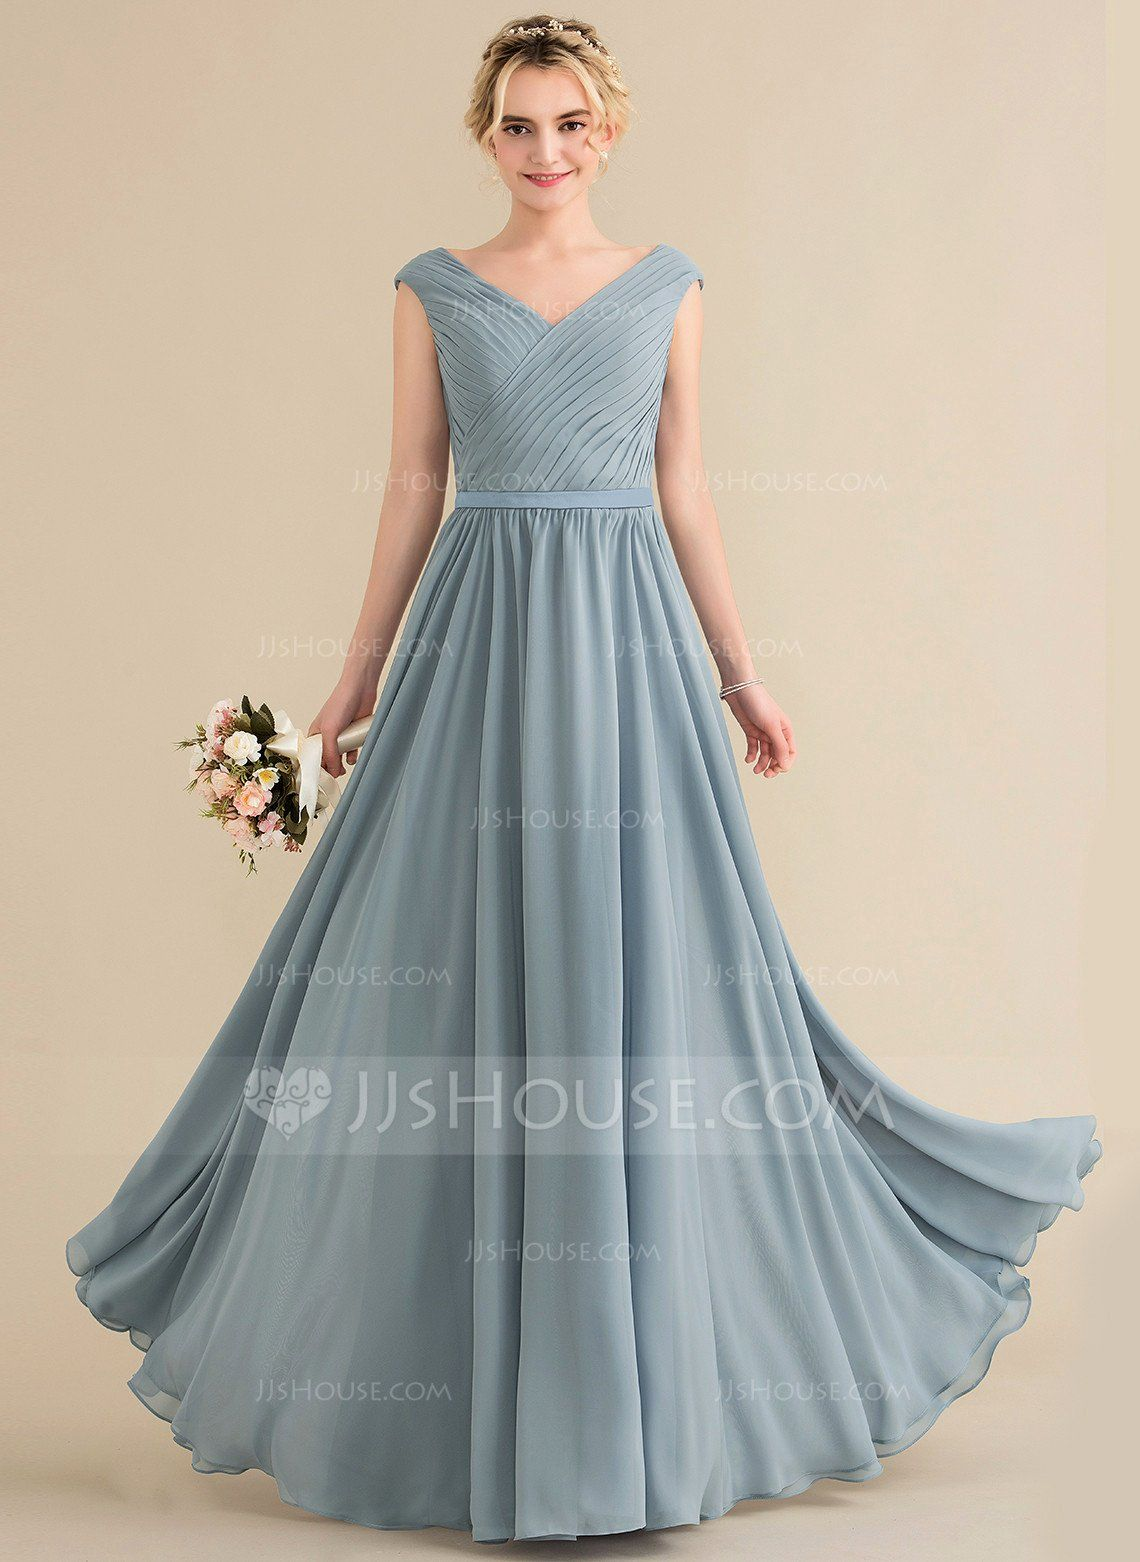 Jjs House Wedding Dress Fresh A Jjshouse Wedding Dresses Revie Floor Length Chiffon Bridesmaid Dresses Steel Blue Bridesmaid Dresses Spring Bridesmaid Dresses